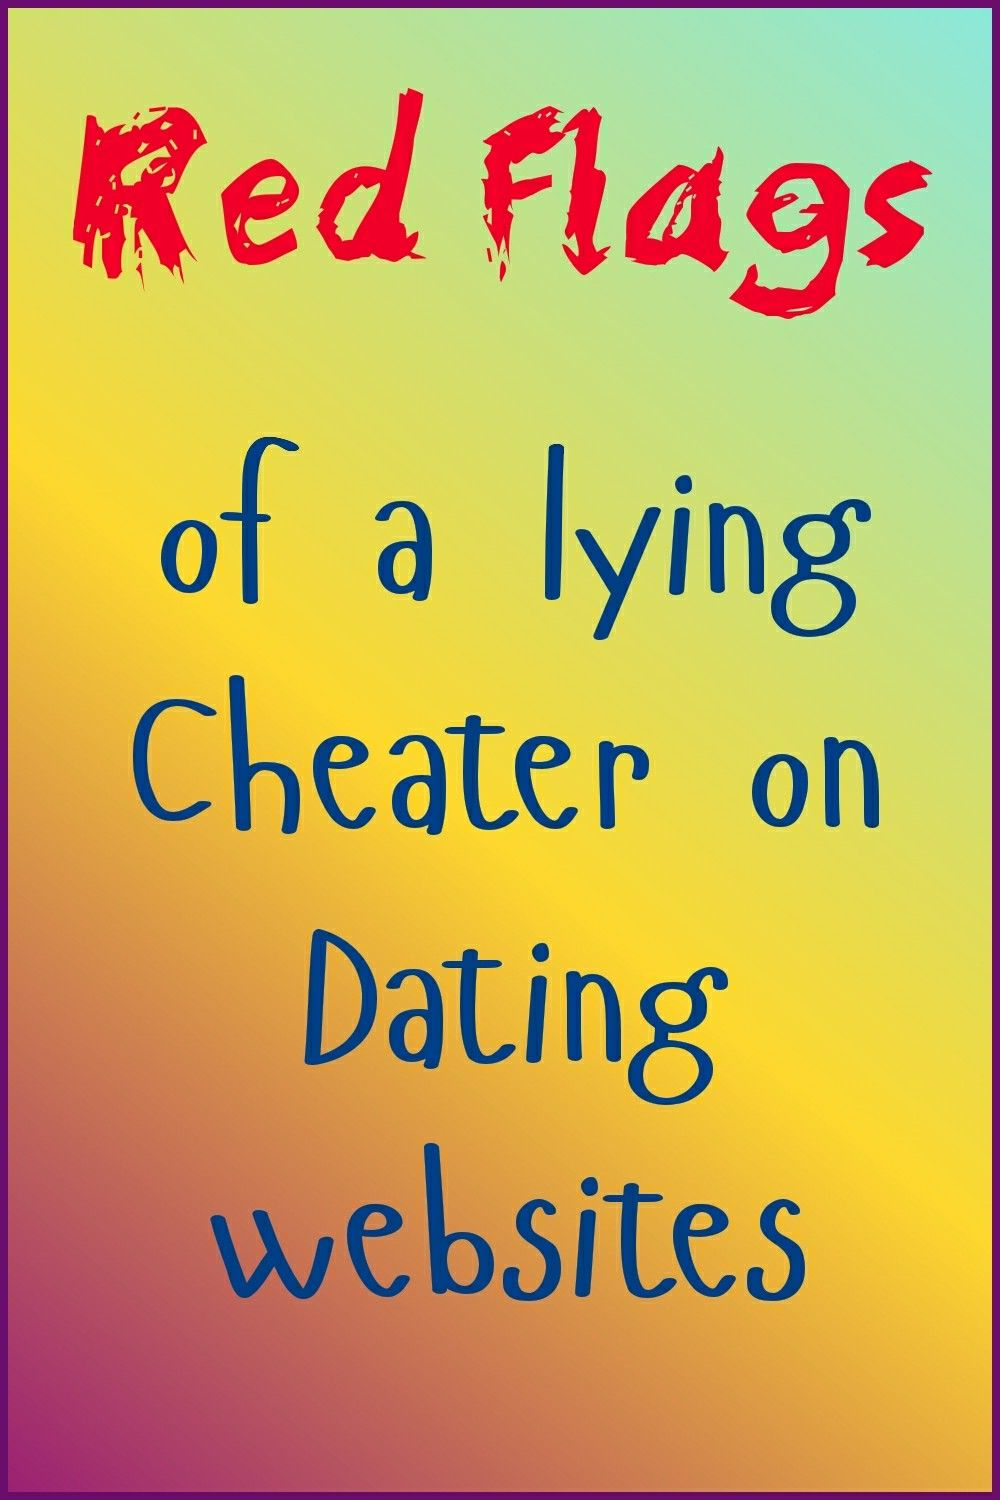 Tips on how to know when someone is lying to you or trying to cheat on a  dating app.